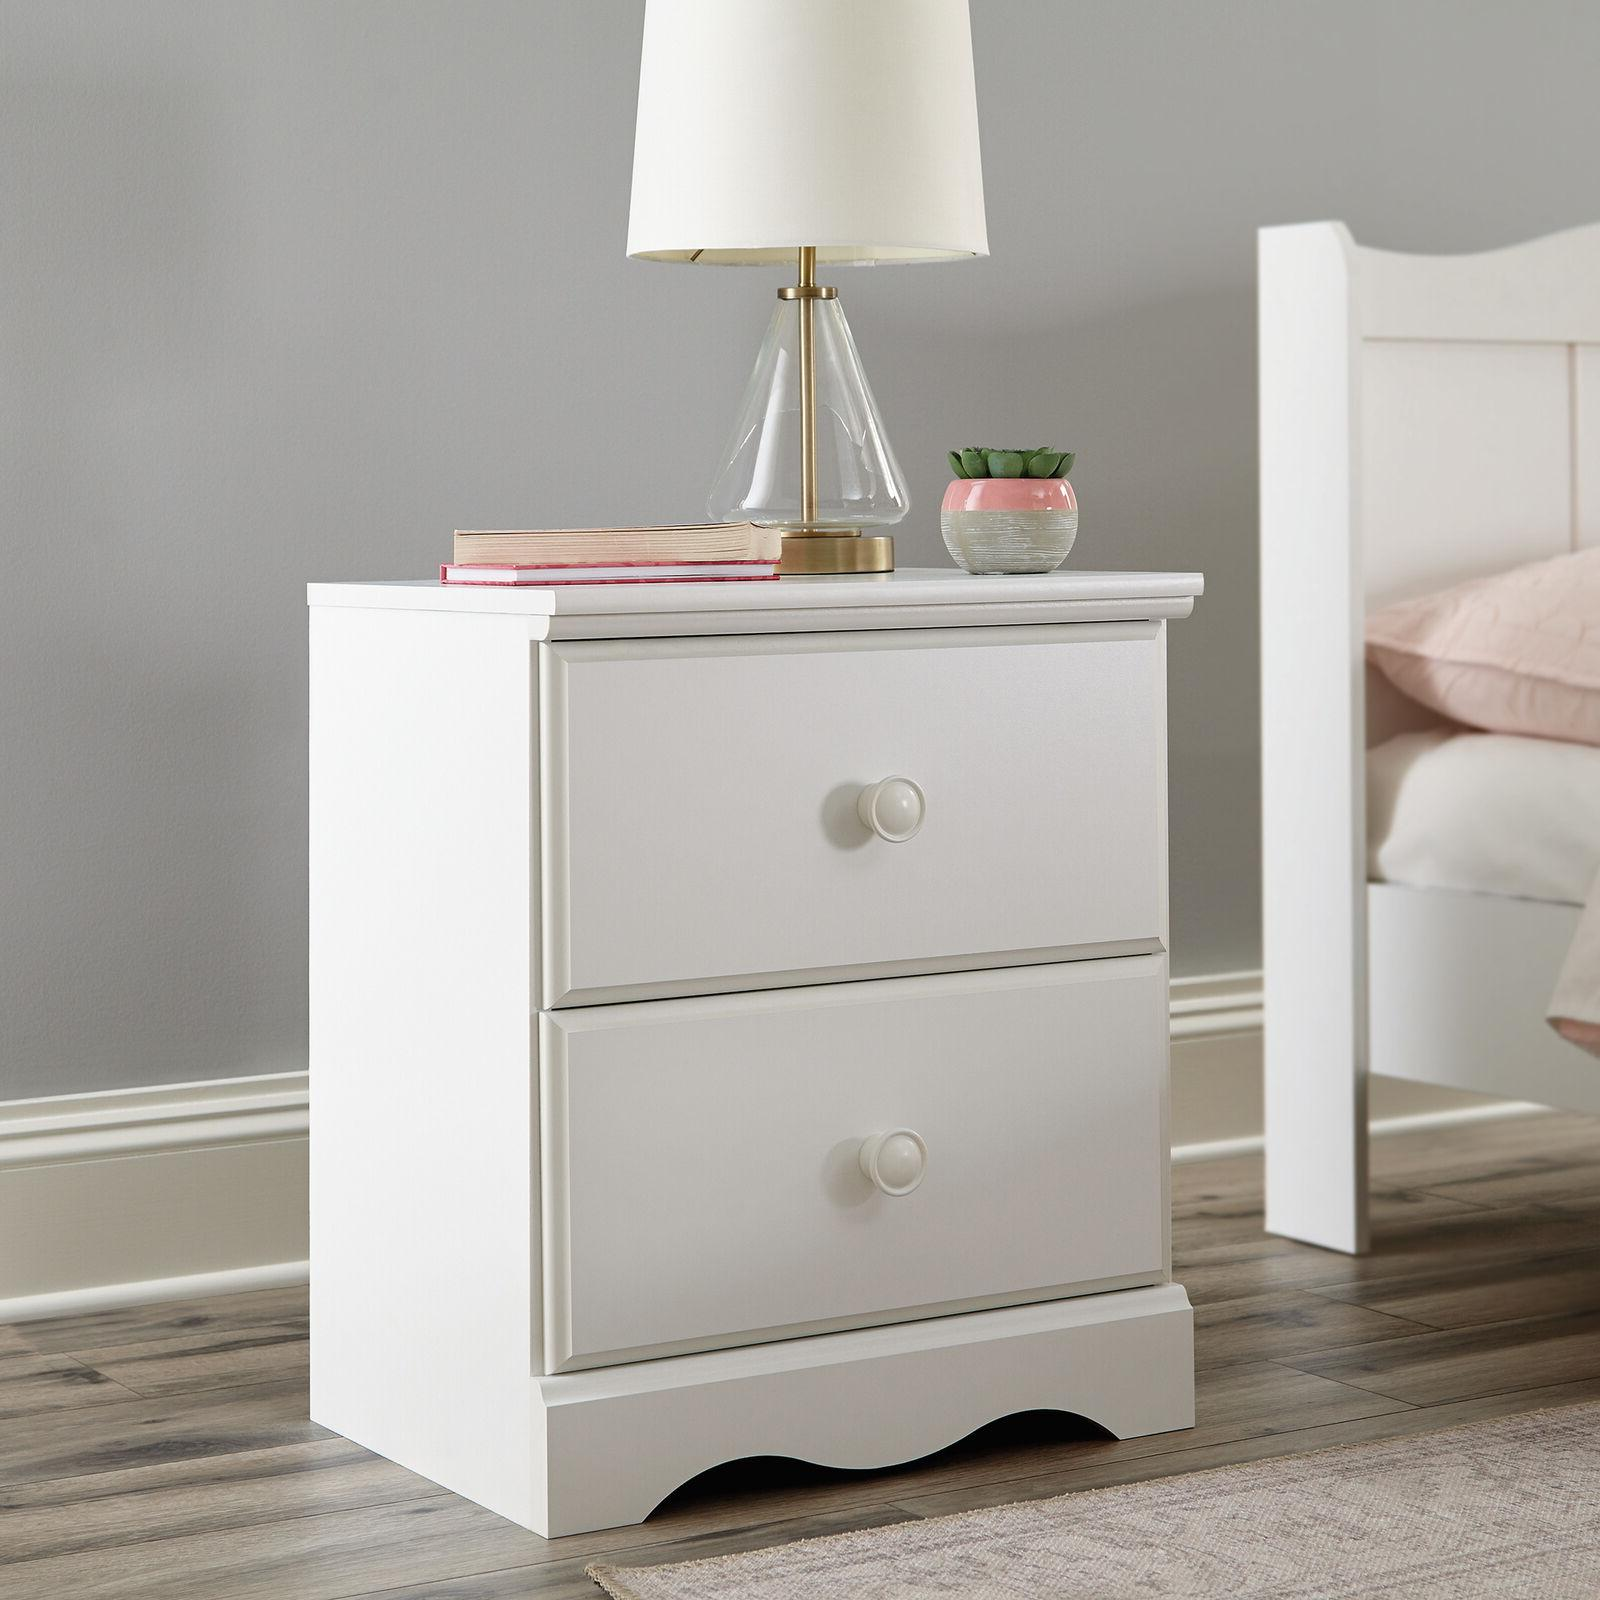 2-Drawer Nightstand Bed Side Table Lamp Stand Kids Teens Bed